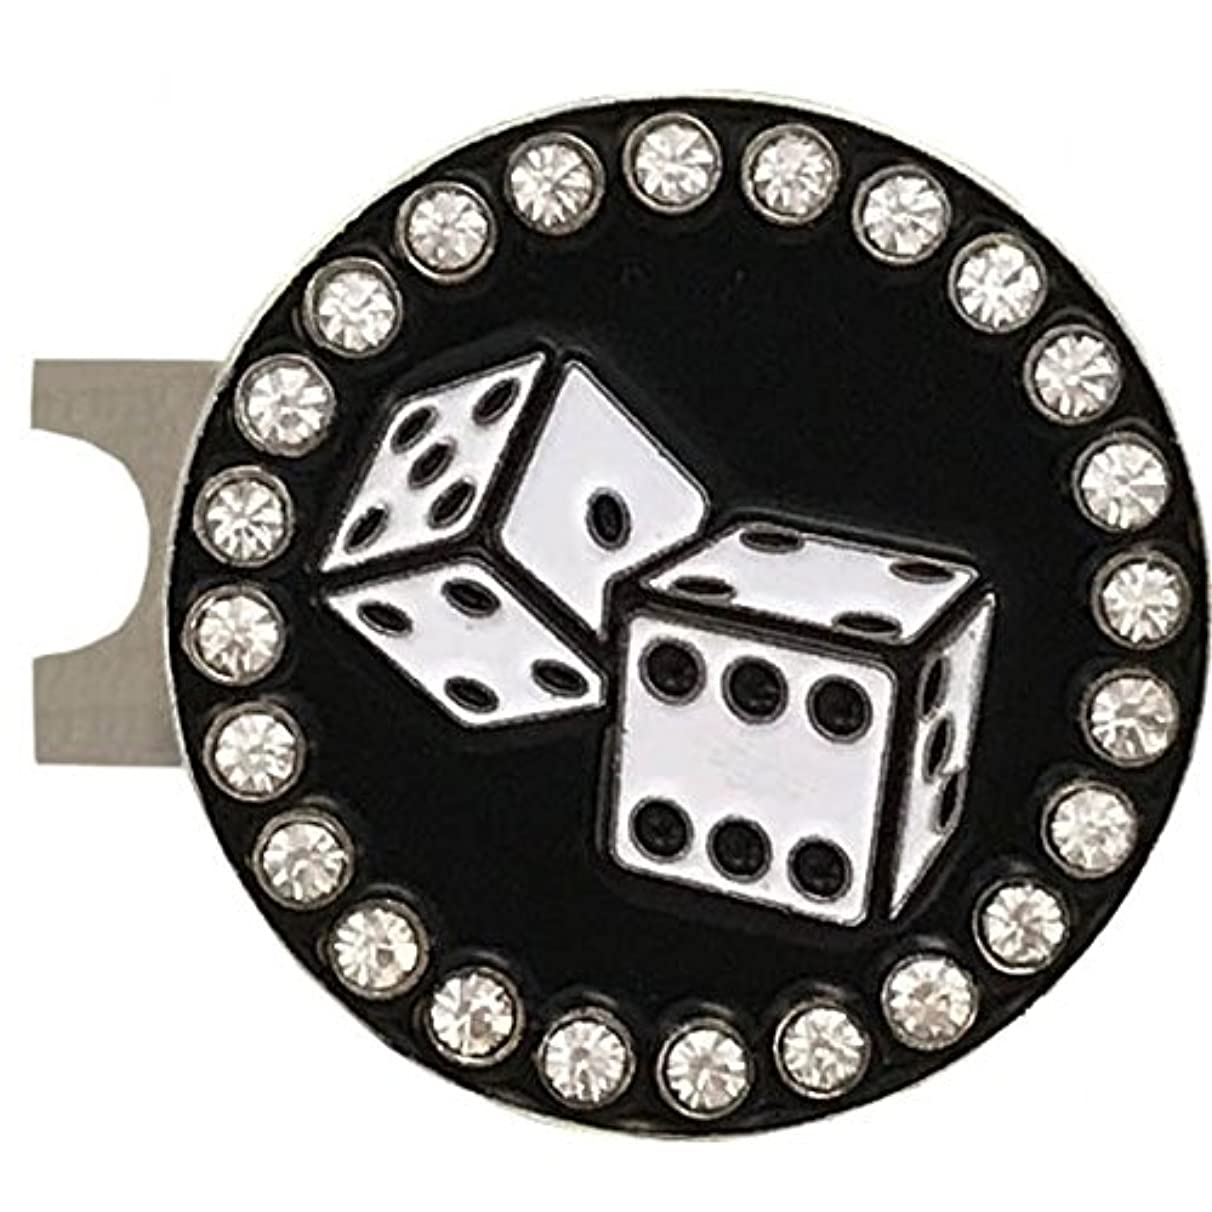 Giggle Golf Bling White Dice Golf Ball Marker with A Poker Chip Hat Clip